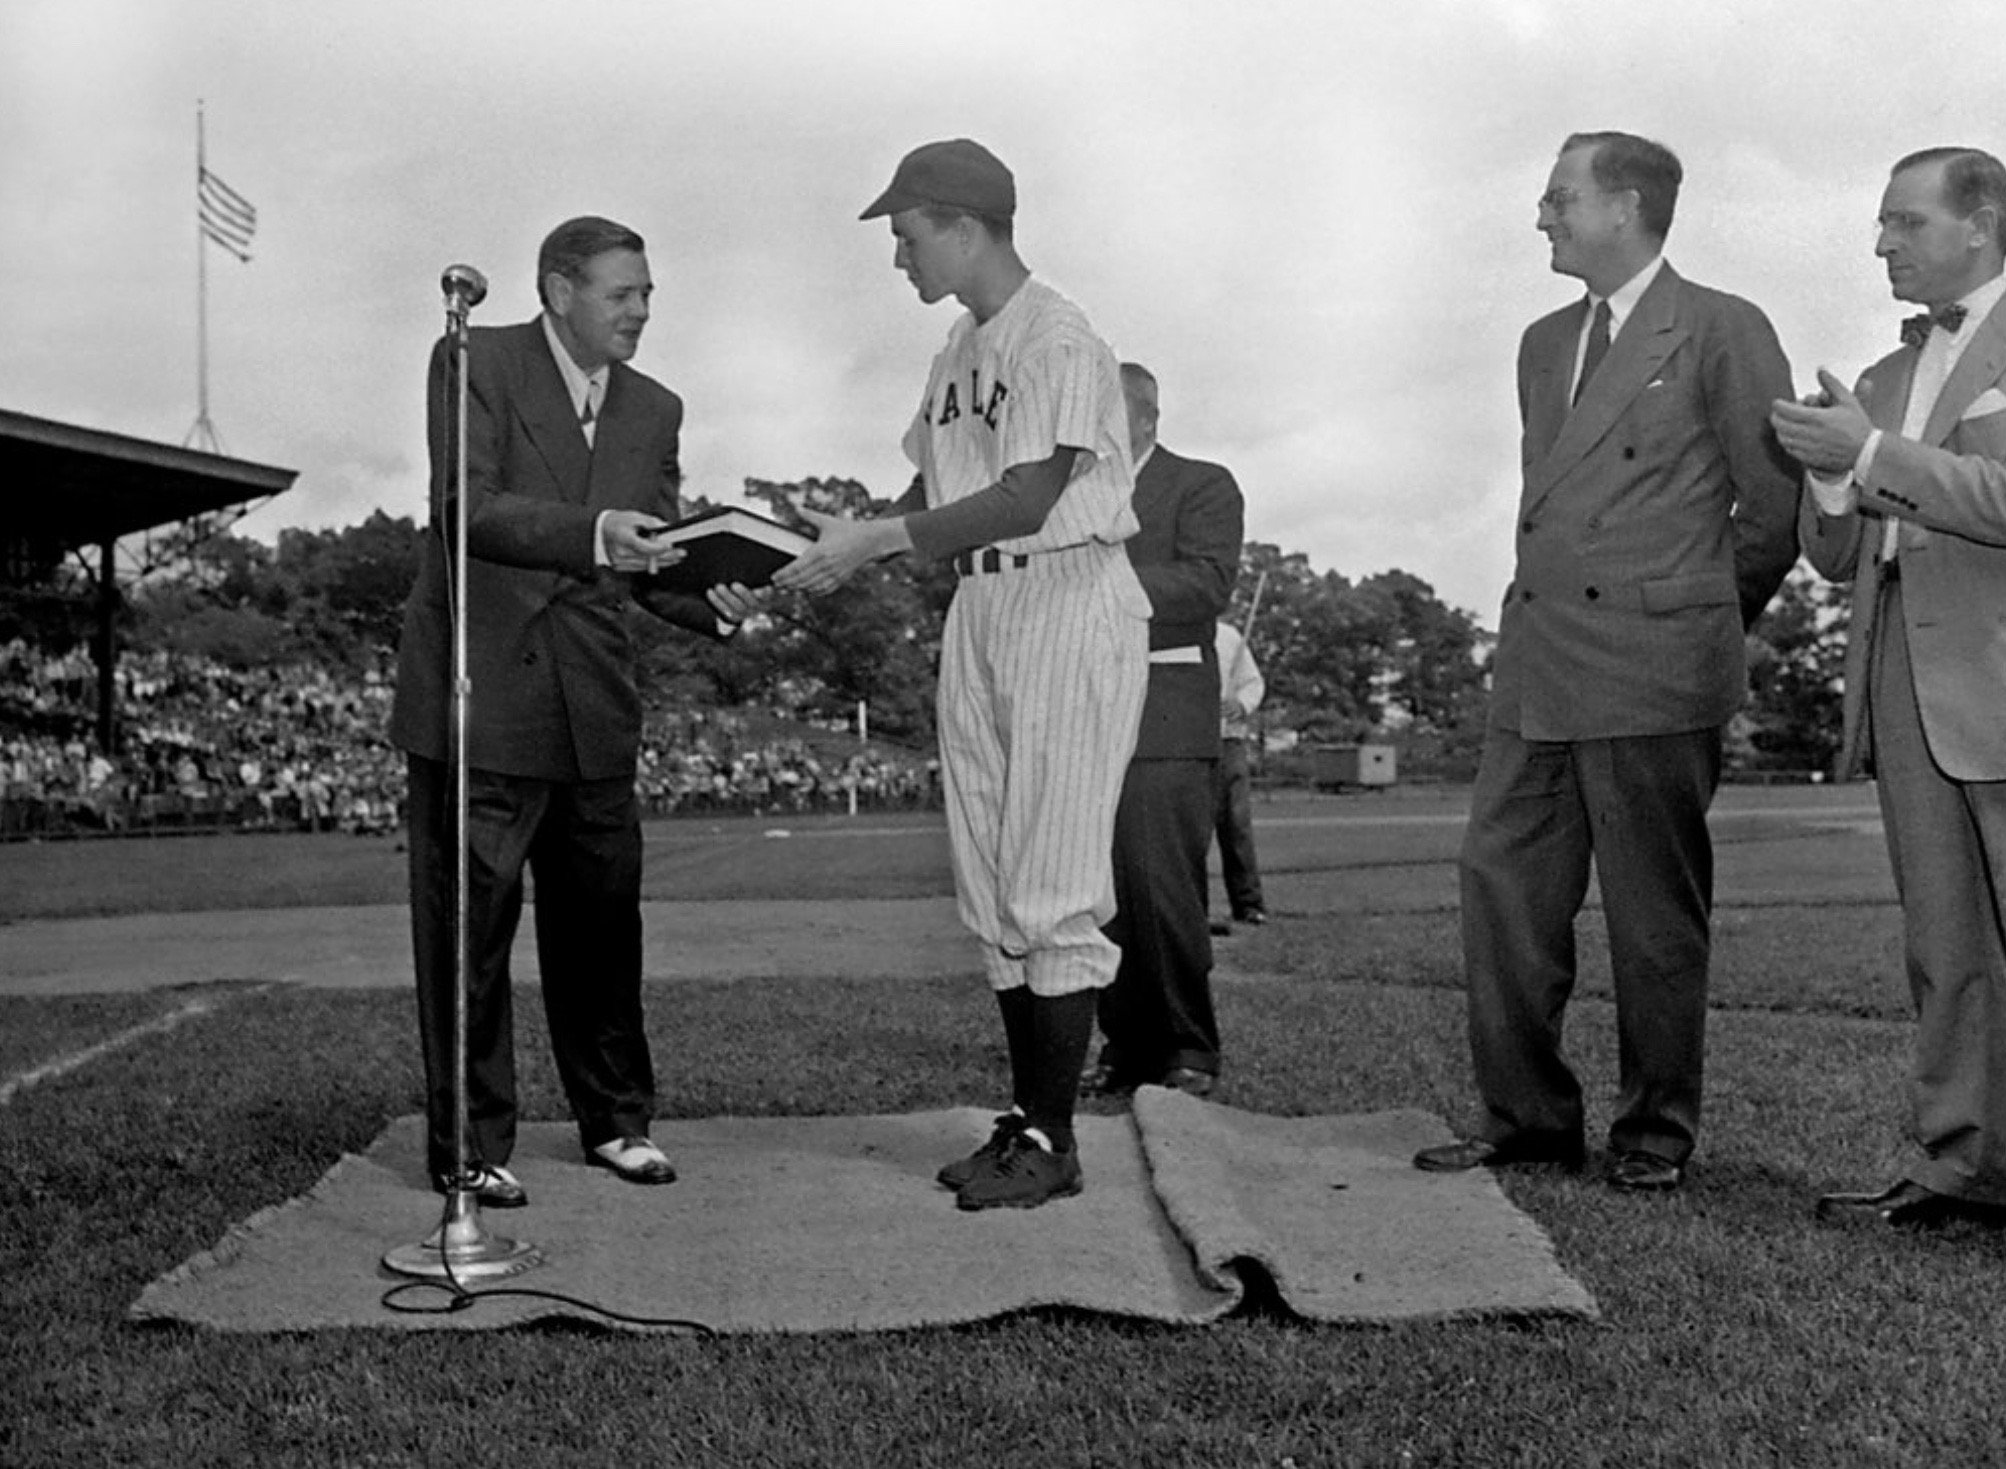 George H.W. Bush, Yale baseball captain, with Babe Ruth, 70 years ago this June: https://t.co/Xzi9WxaCQ2